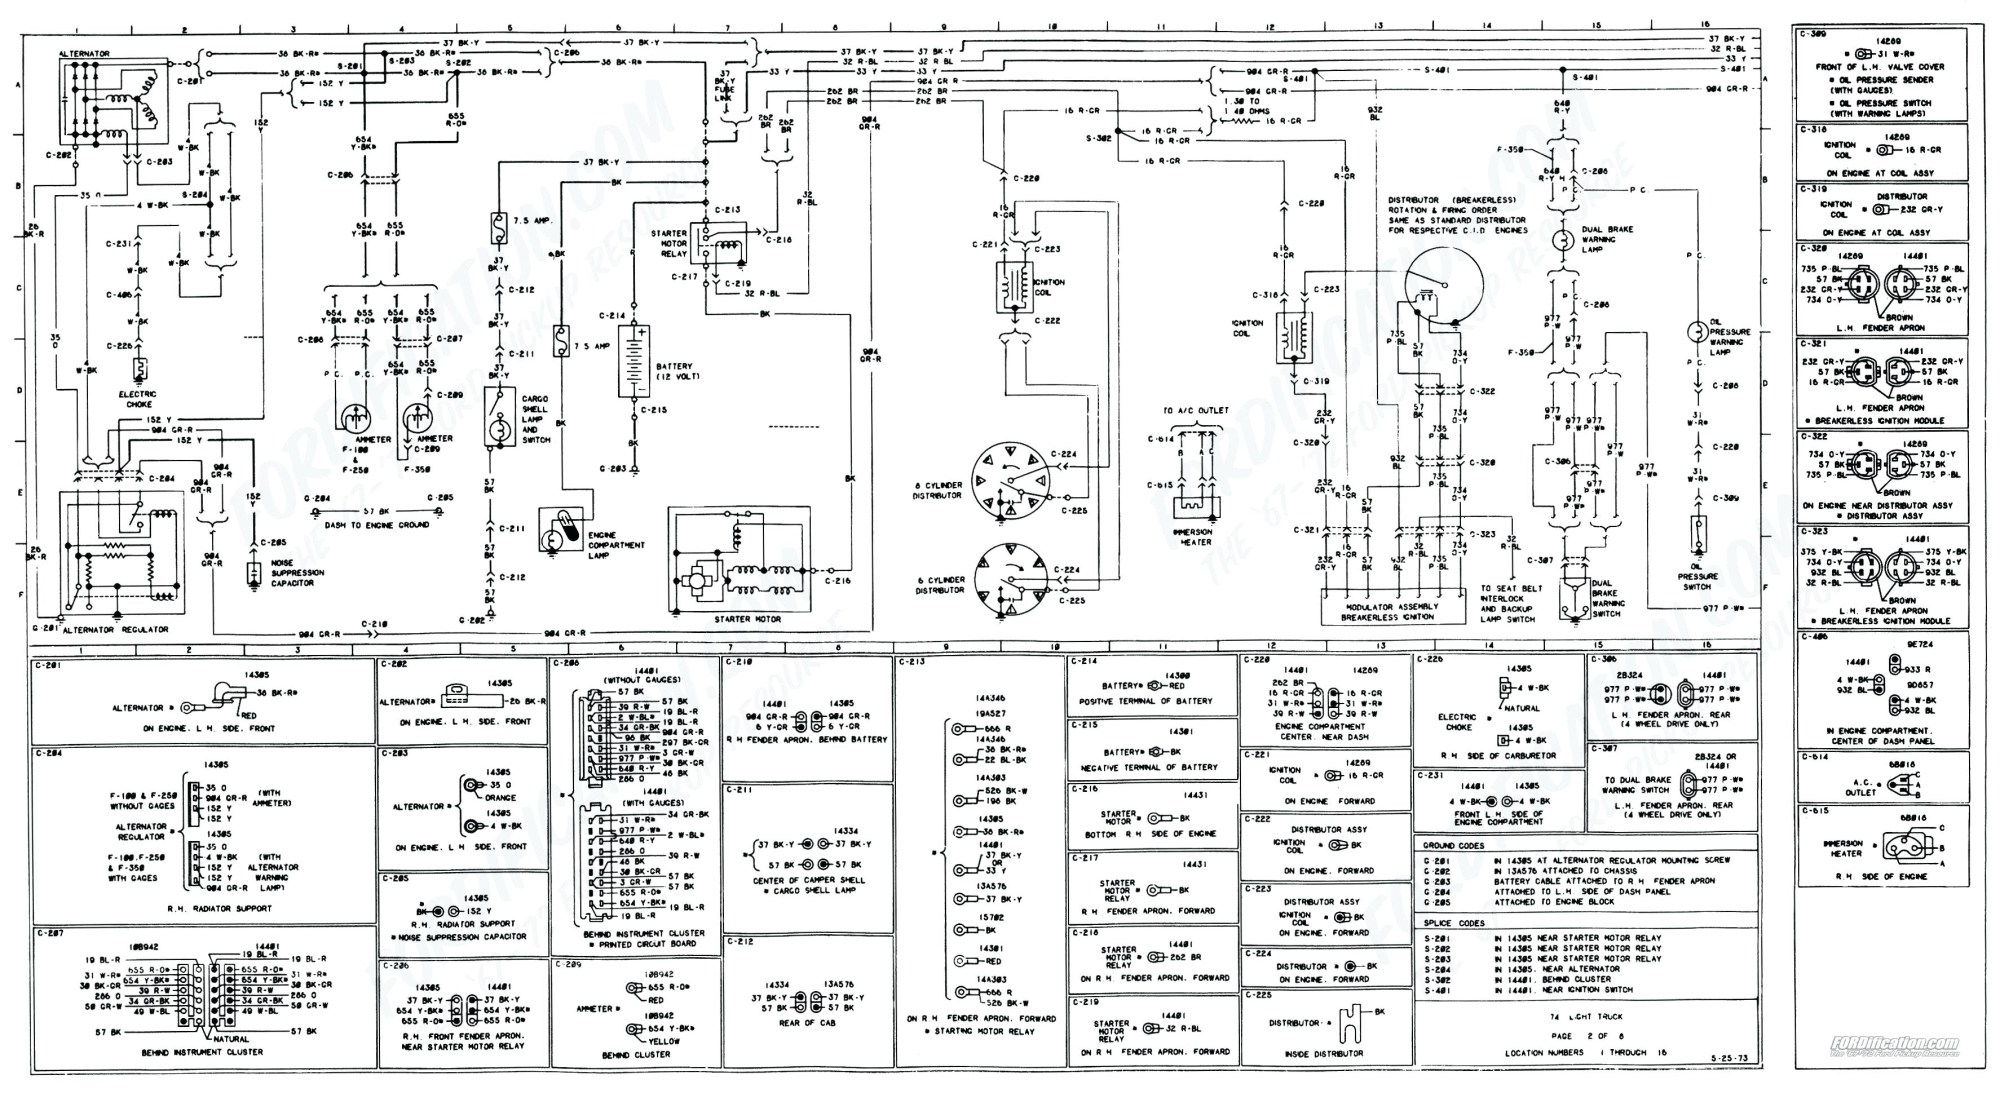 hight resolution of 2004 ford f750 fuse box diagram wiring diagram review2004 ford f750 fuse box diagram wiring diagram